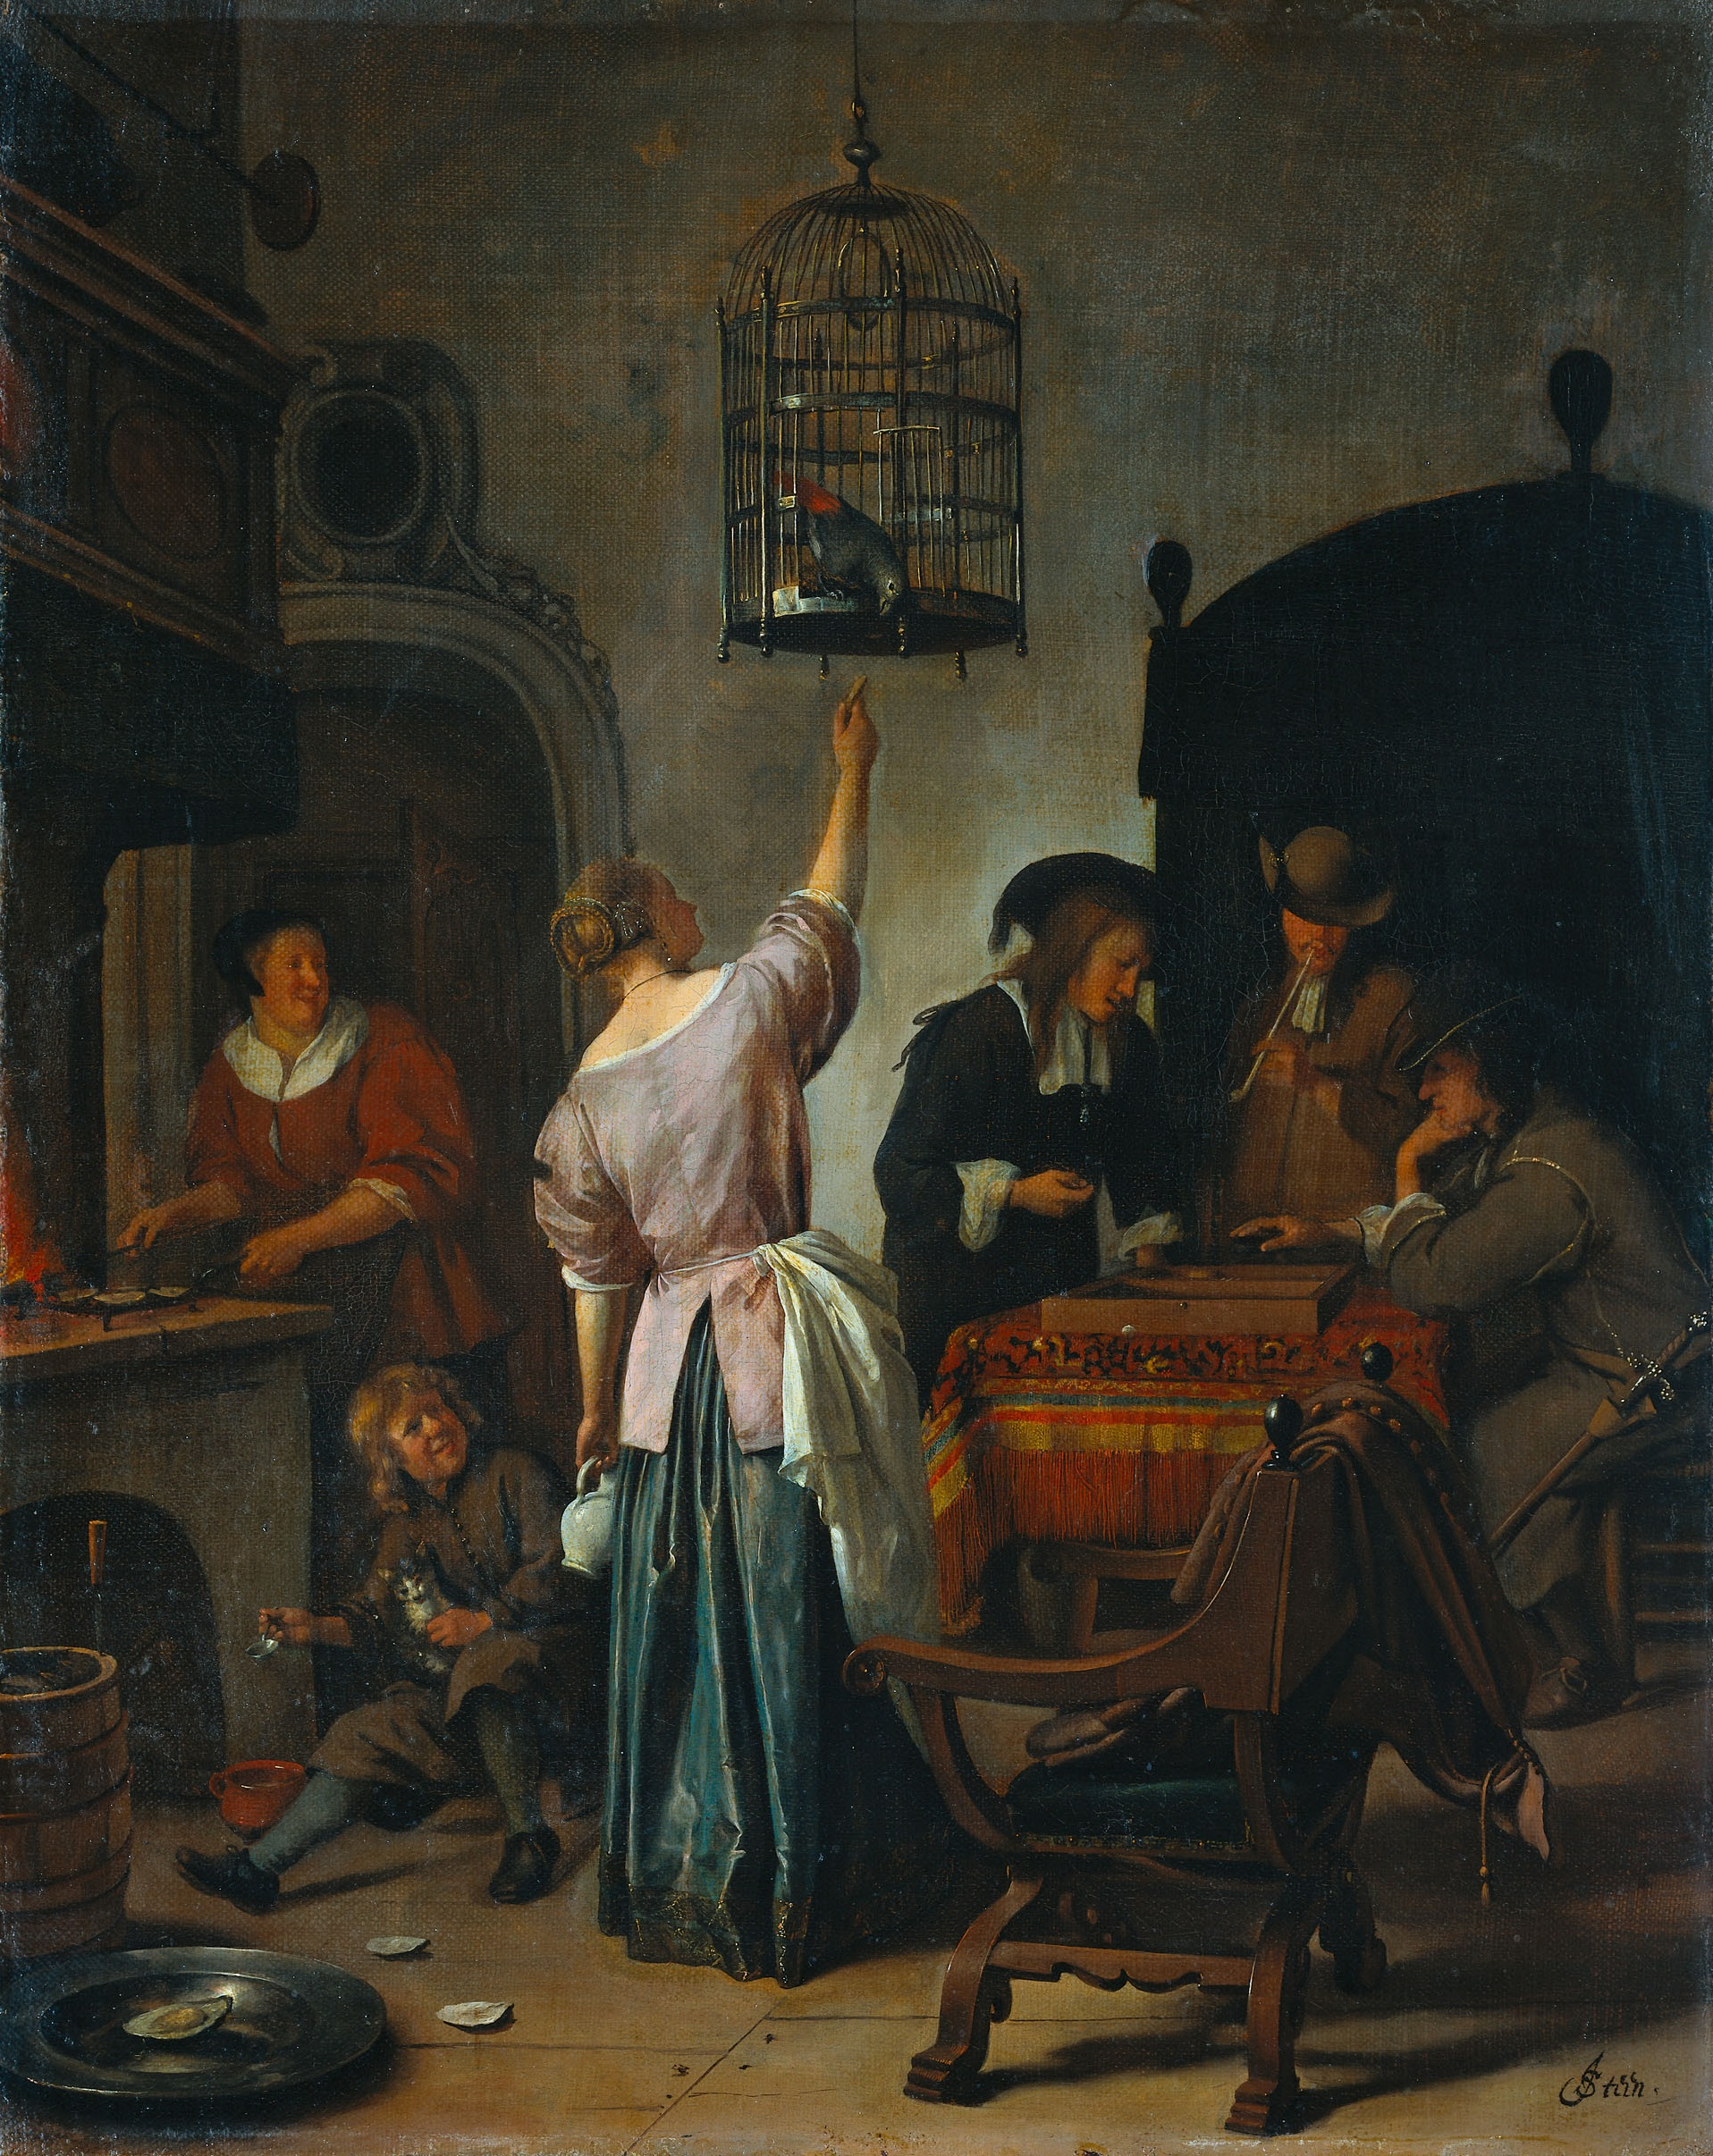 http://upload.wikimedia.org/wikipedia/commons/f/f9/Jan_Steen_009.jpg